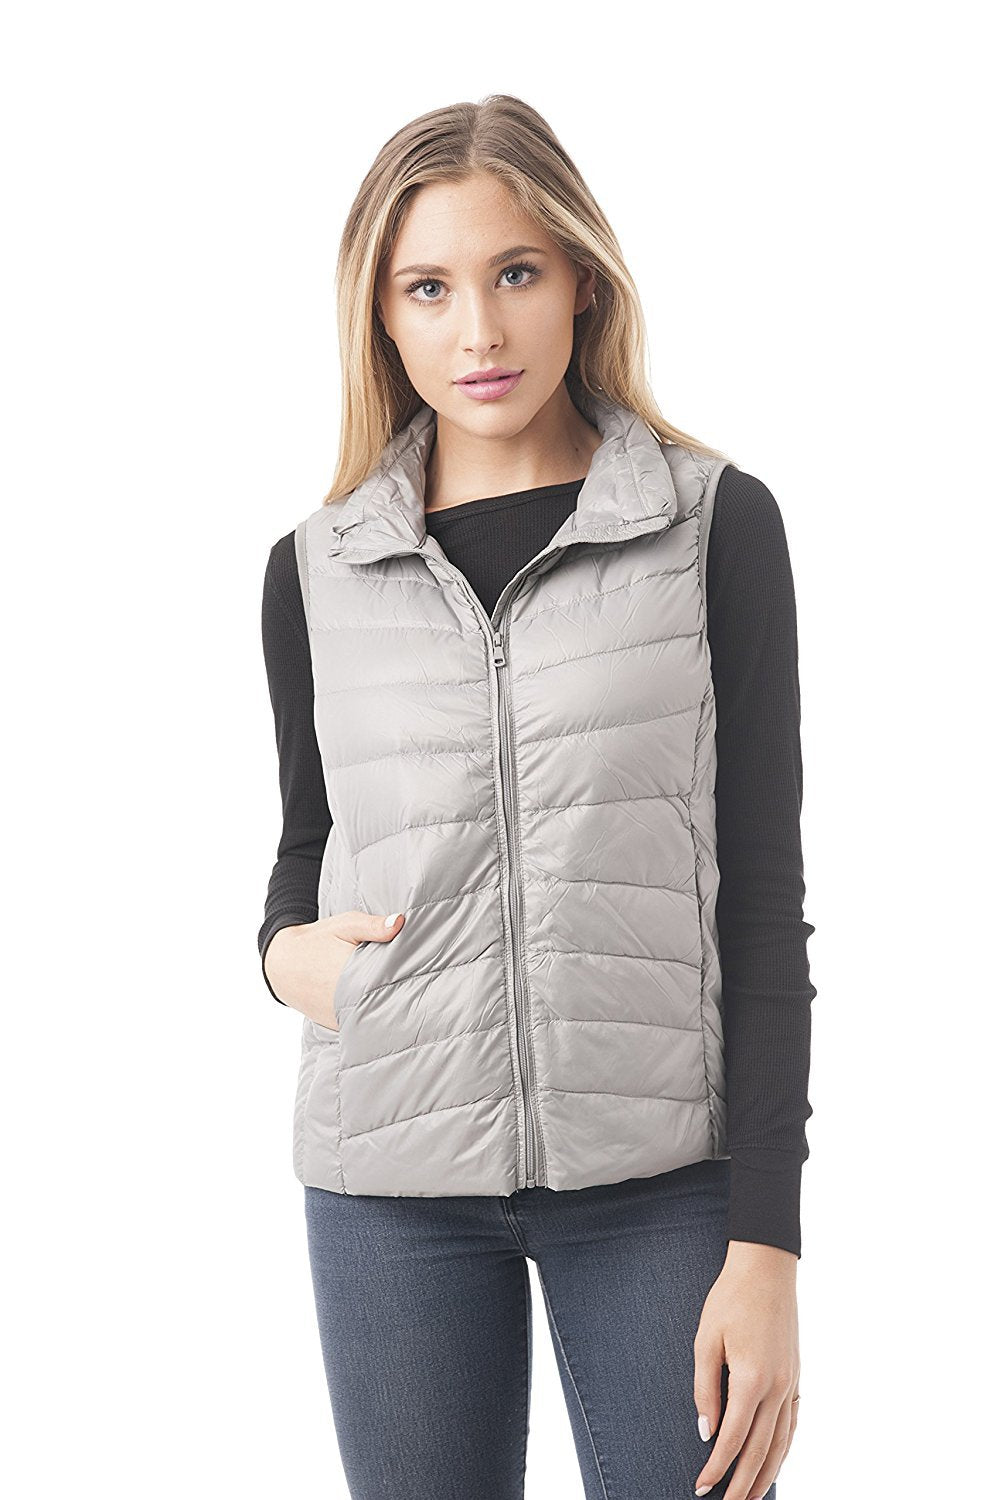 Khanomak Sleeveless Goose Down Jacket Vest